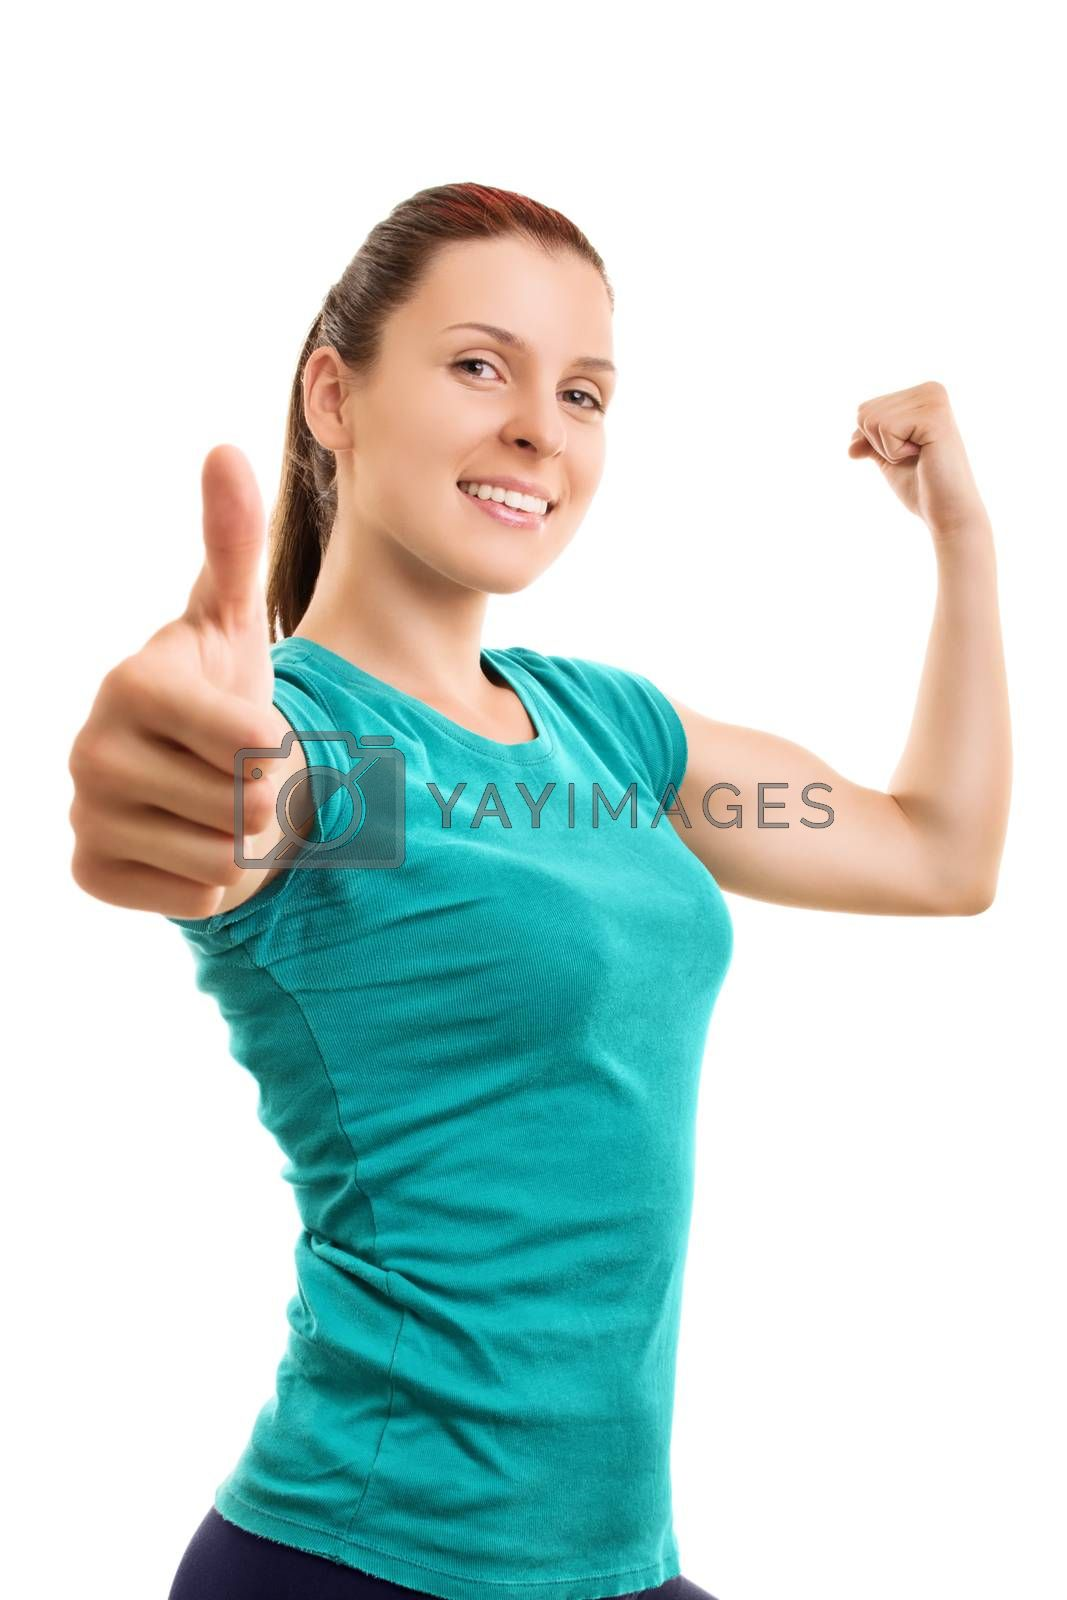 Willpower and strength to be fit. Smiling young athlete giving thumbs up, isolated on white background.